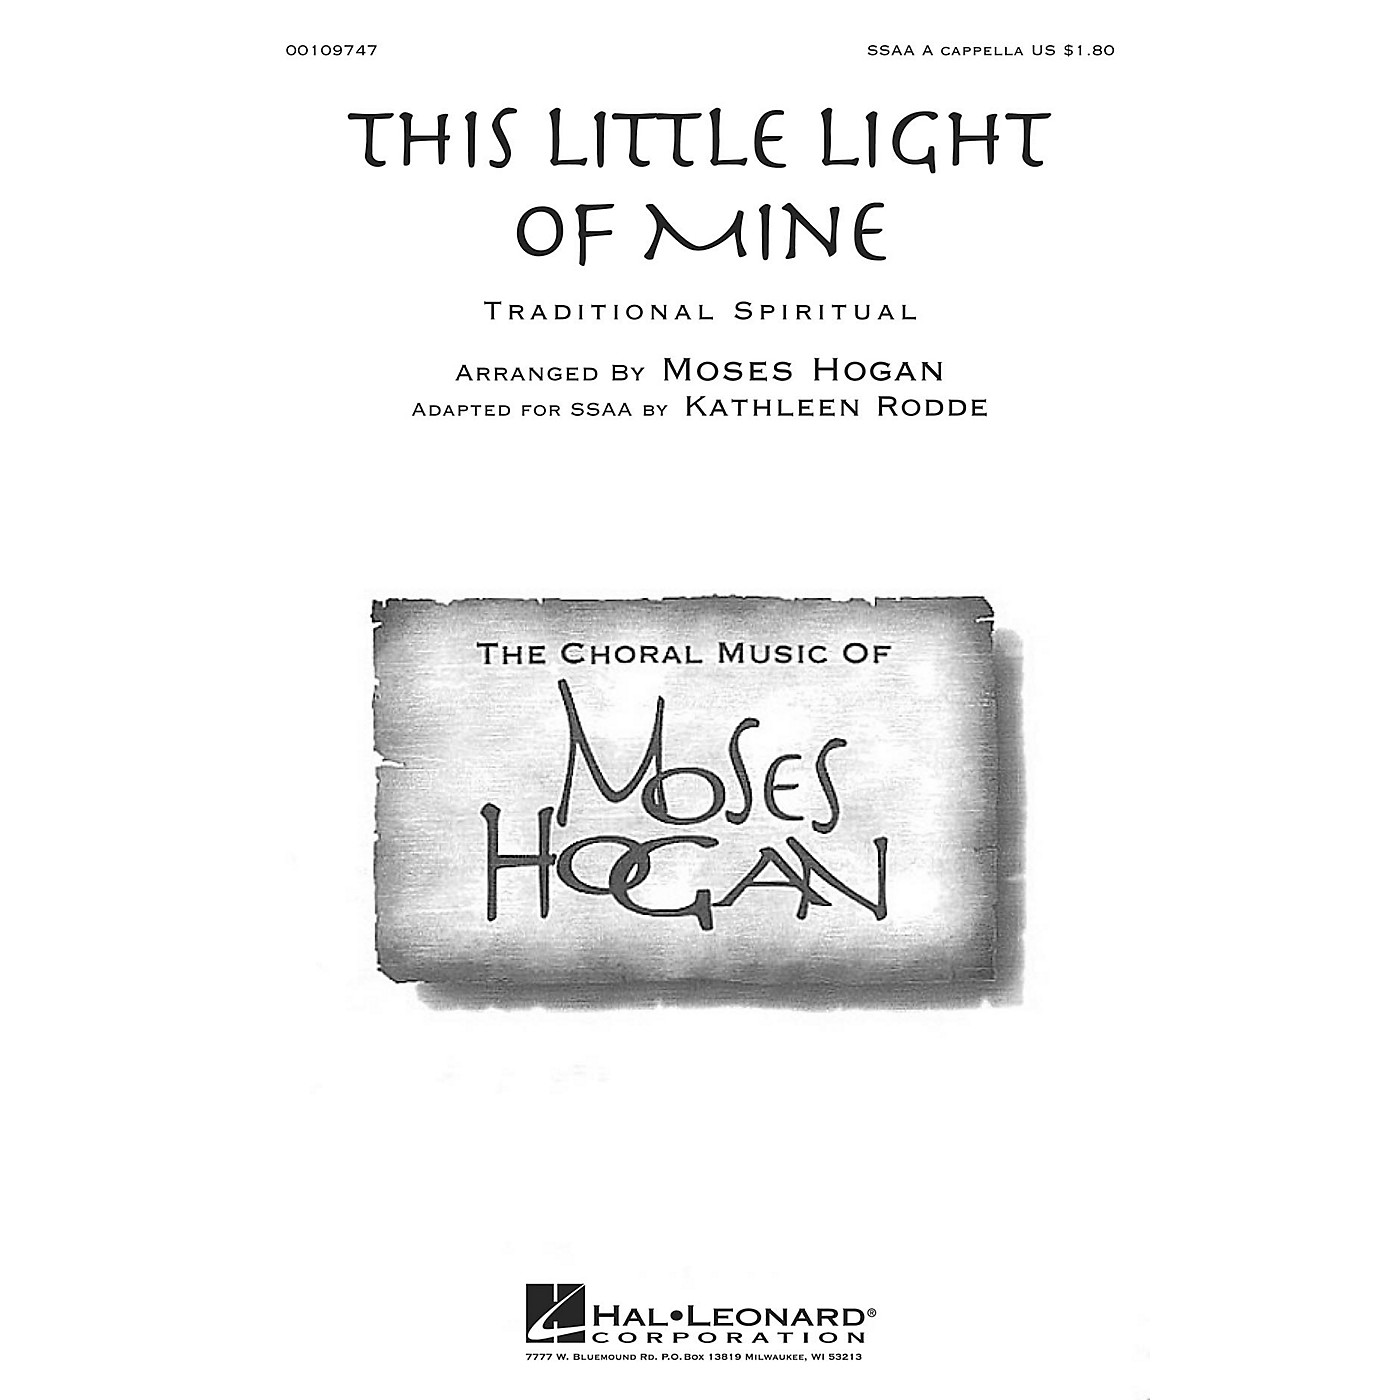 Hal Leonard This Little Light of Mine SSAA A Cappella composed by Moses Hogan thumbnail